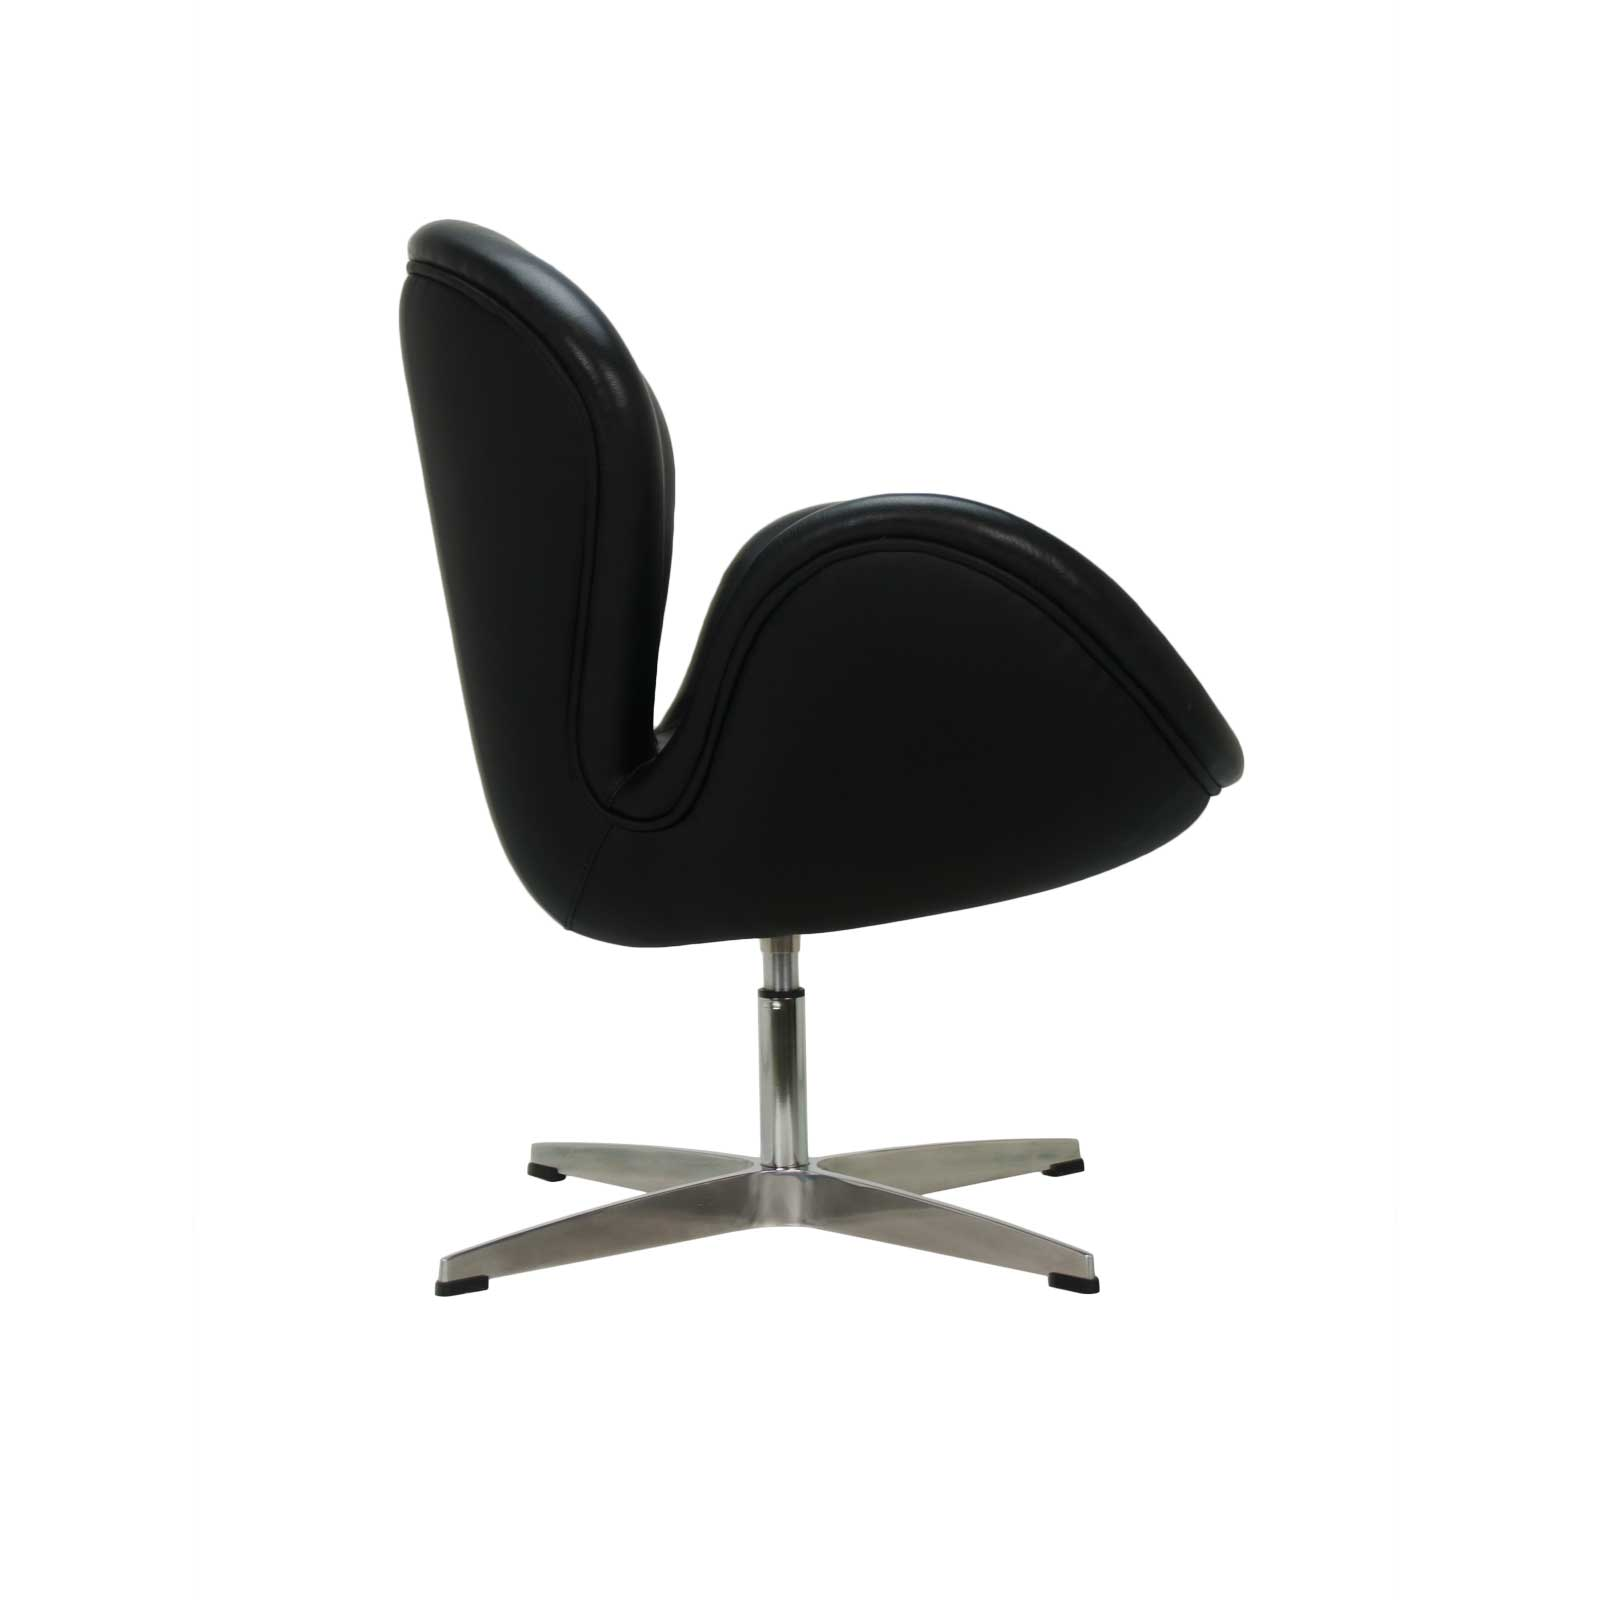 Swan Chair Arne Jacobsen Swan Chair (black) - Formdecor